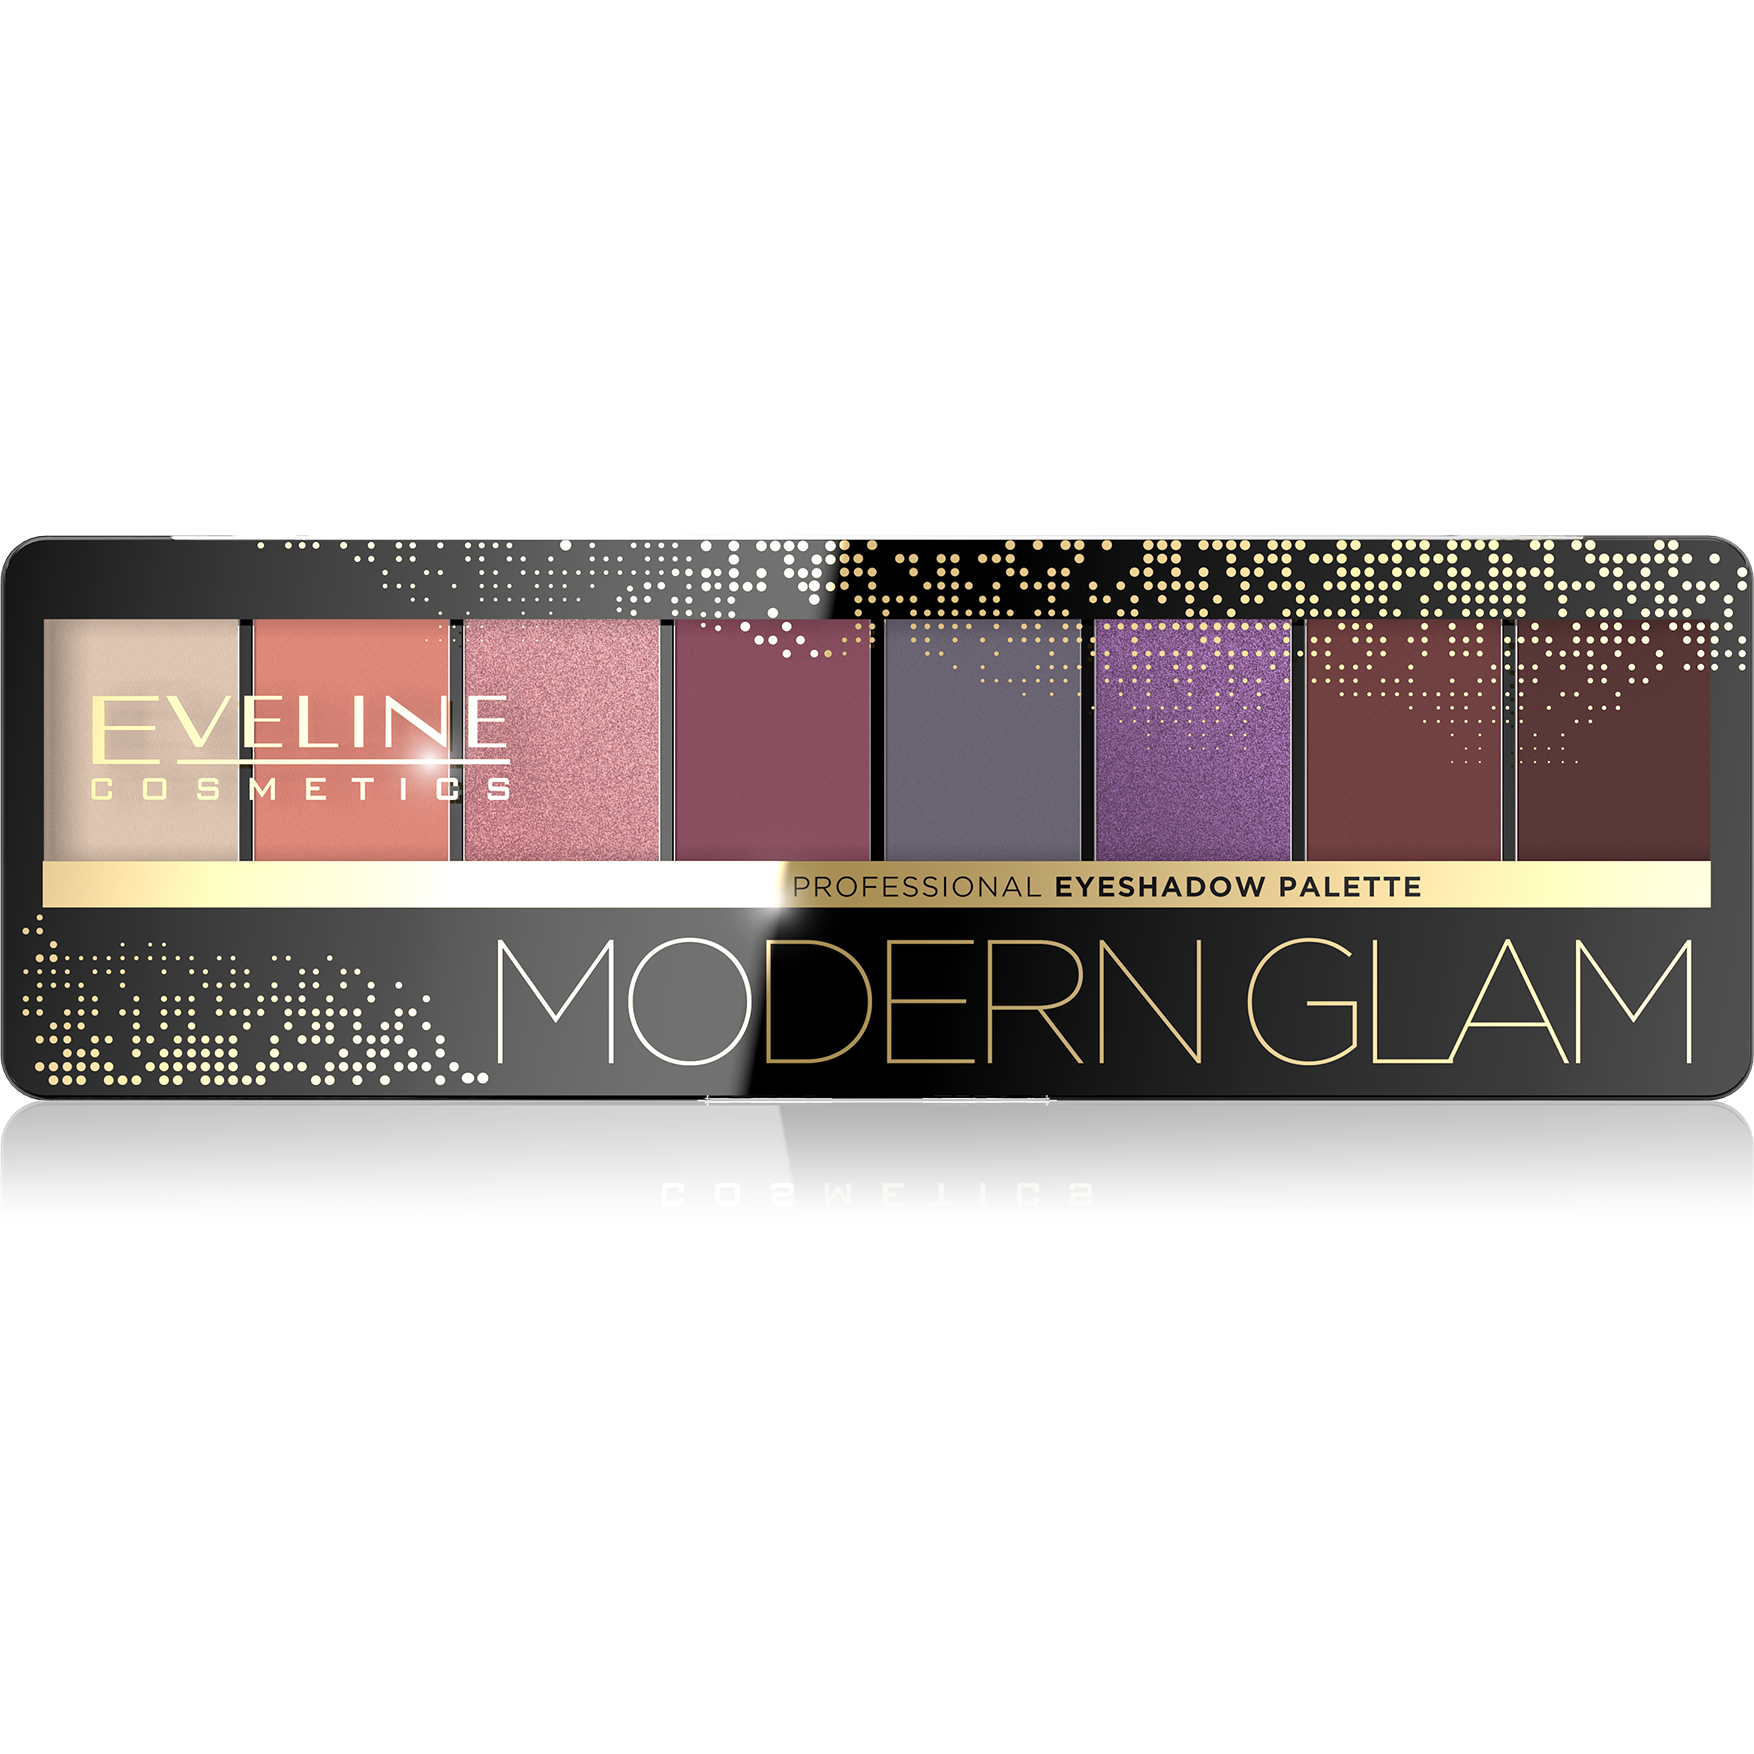 JMKCIEN8PAL3, 5901761984620 EYESHADOW 8 COLOURS PALLETTE MODERN GLAM